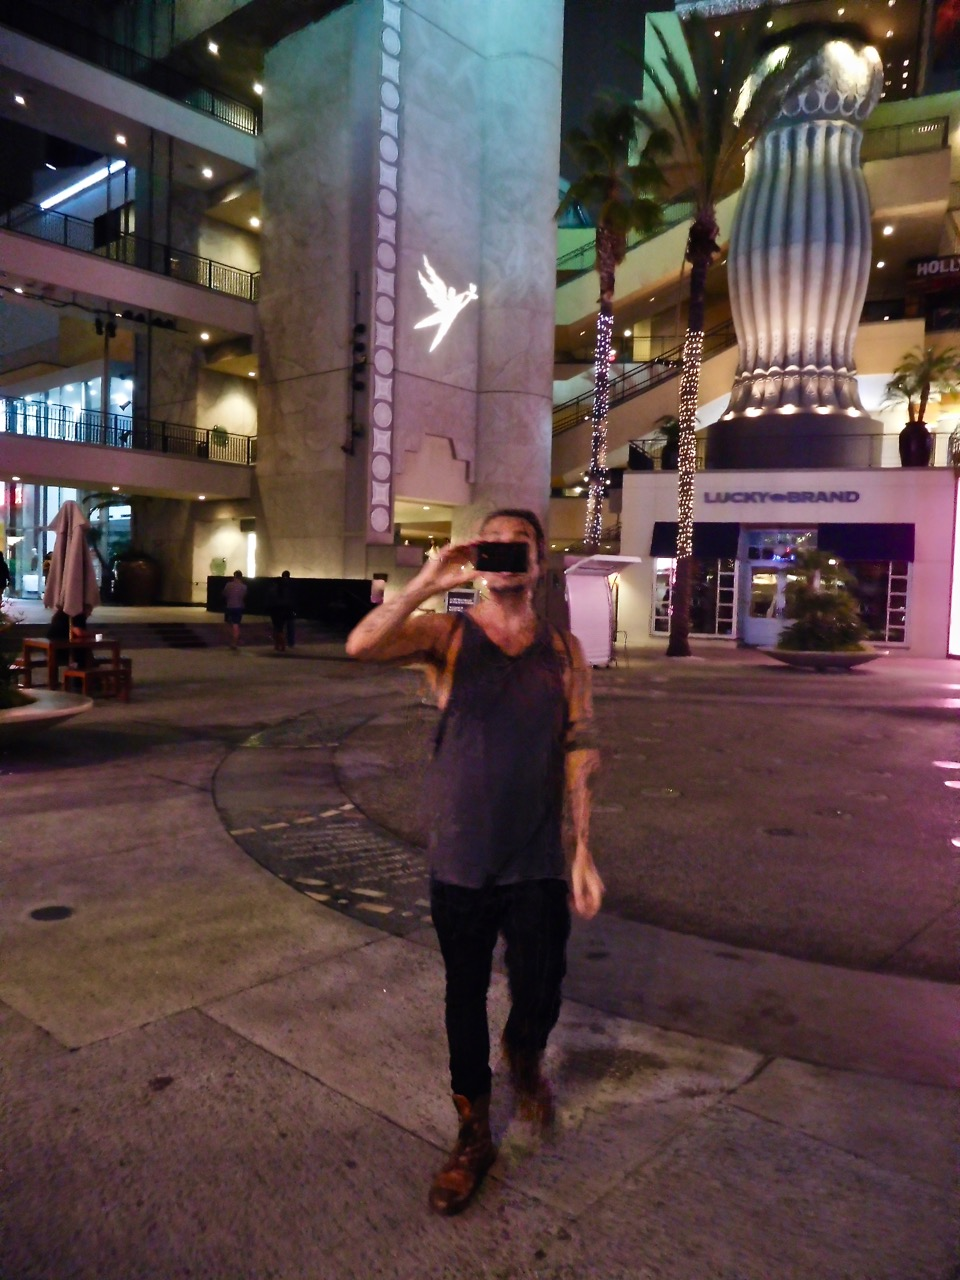 3 Days in L.A. - Hollywood Boulevard at night (3)